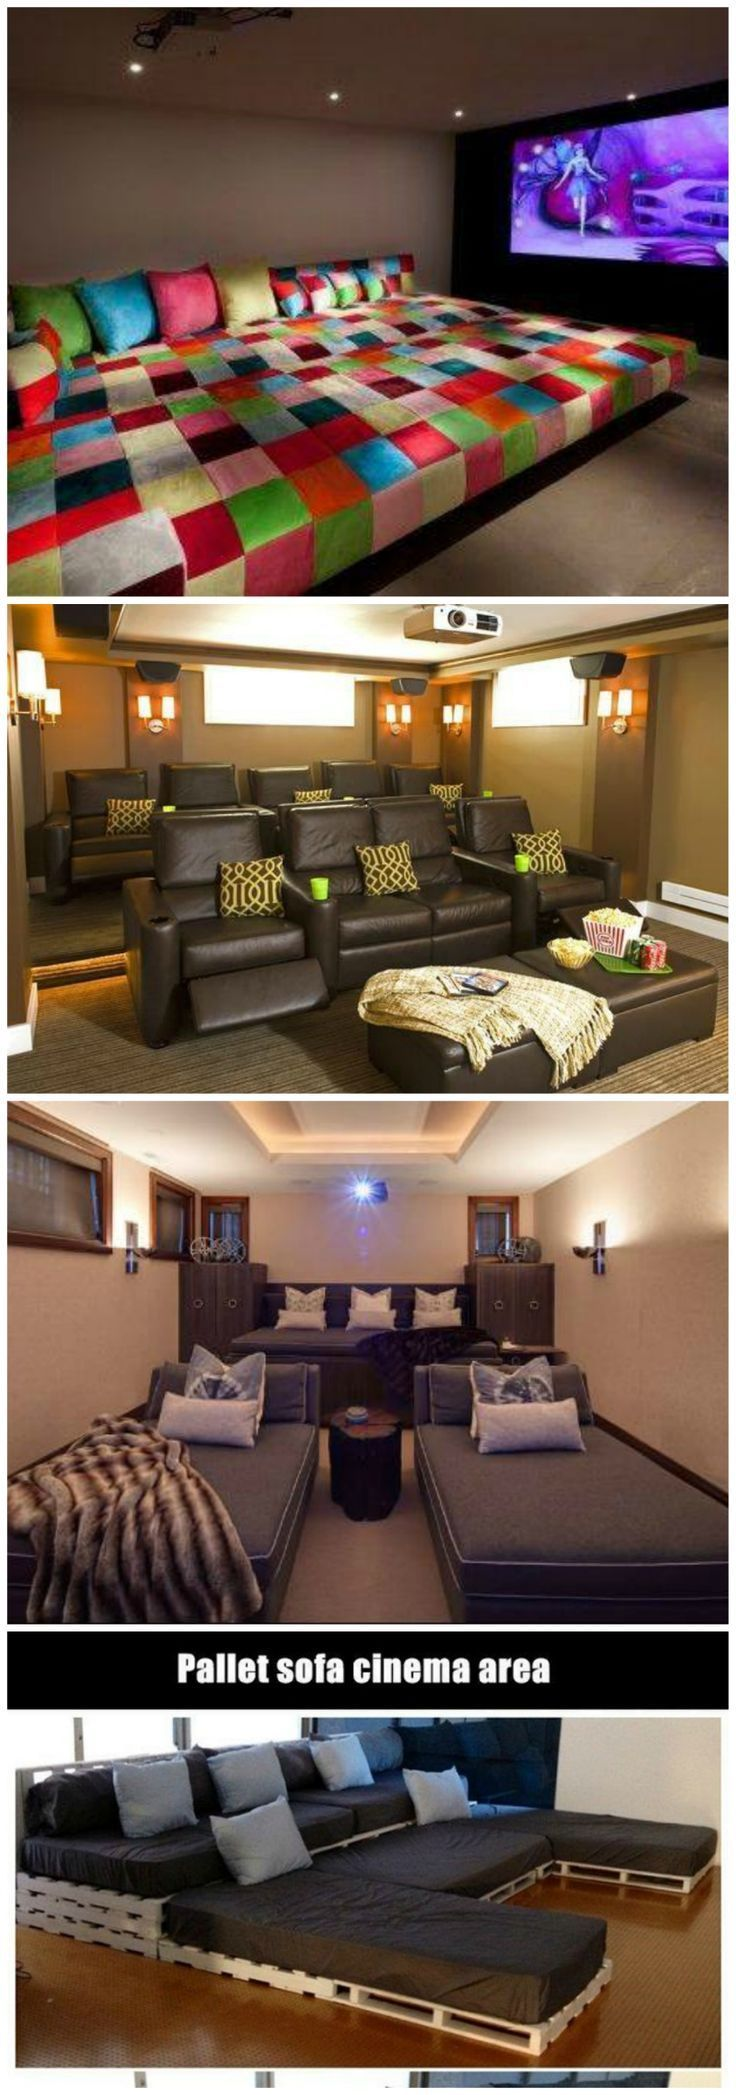 Home More ideas below: #HomeTheater #BasementIdeas DIY Home theater Decorations Ideas Basement Home theater Rooms Red Home theater Seating Small Home theater Speakers Luxury Home theater Couch Design Cozy Home theater Projector Setup Modern Home theater Lighting System